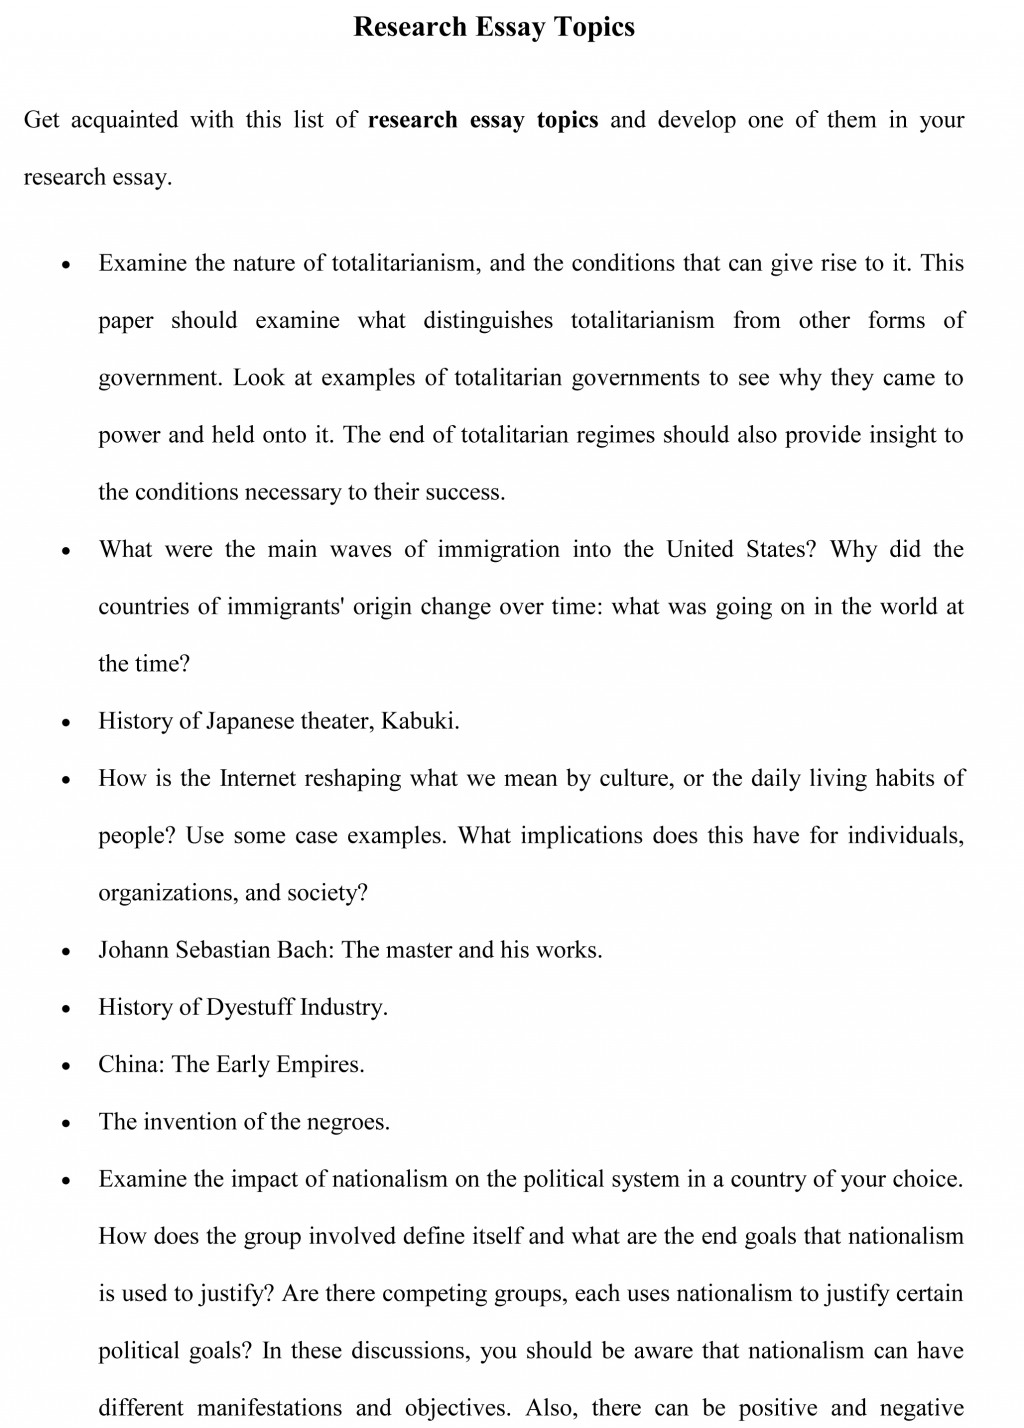 005 Research Essay Topics Sample Paper Easy Wondrous Ideas Large